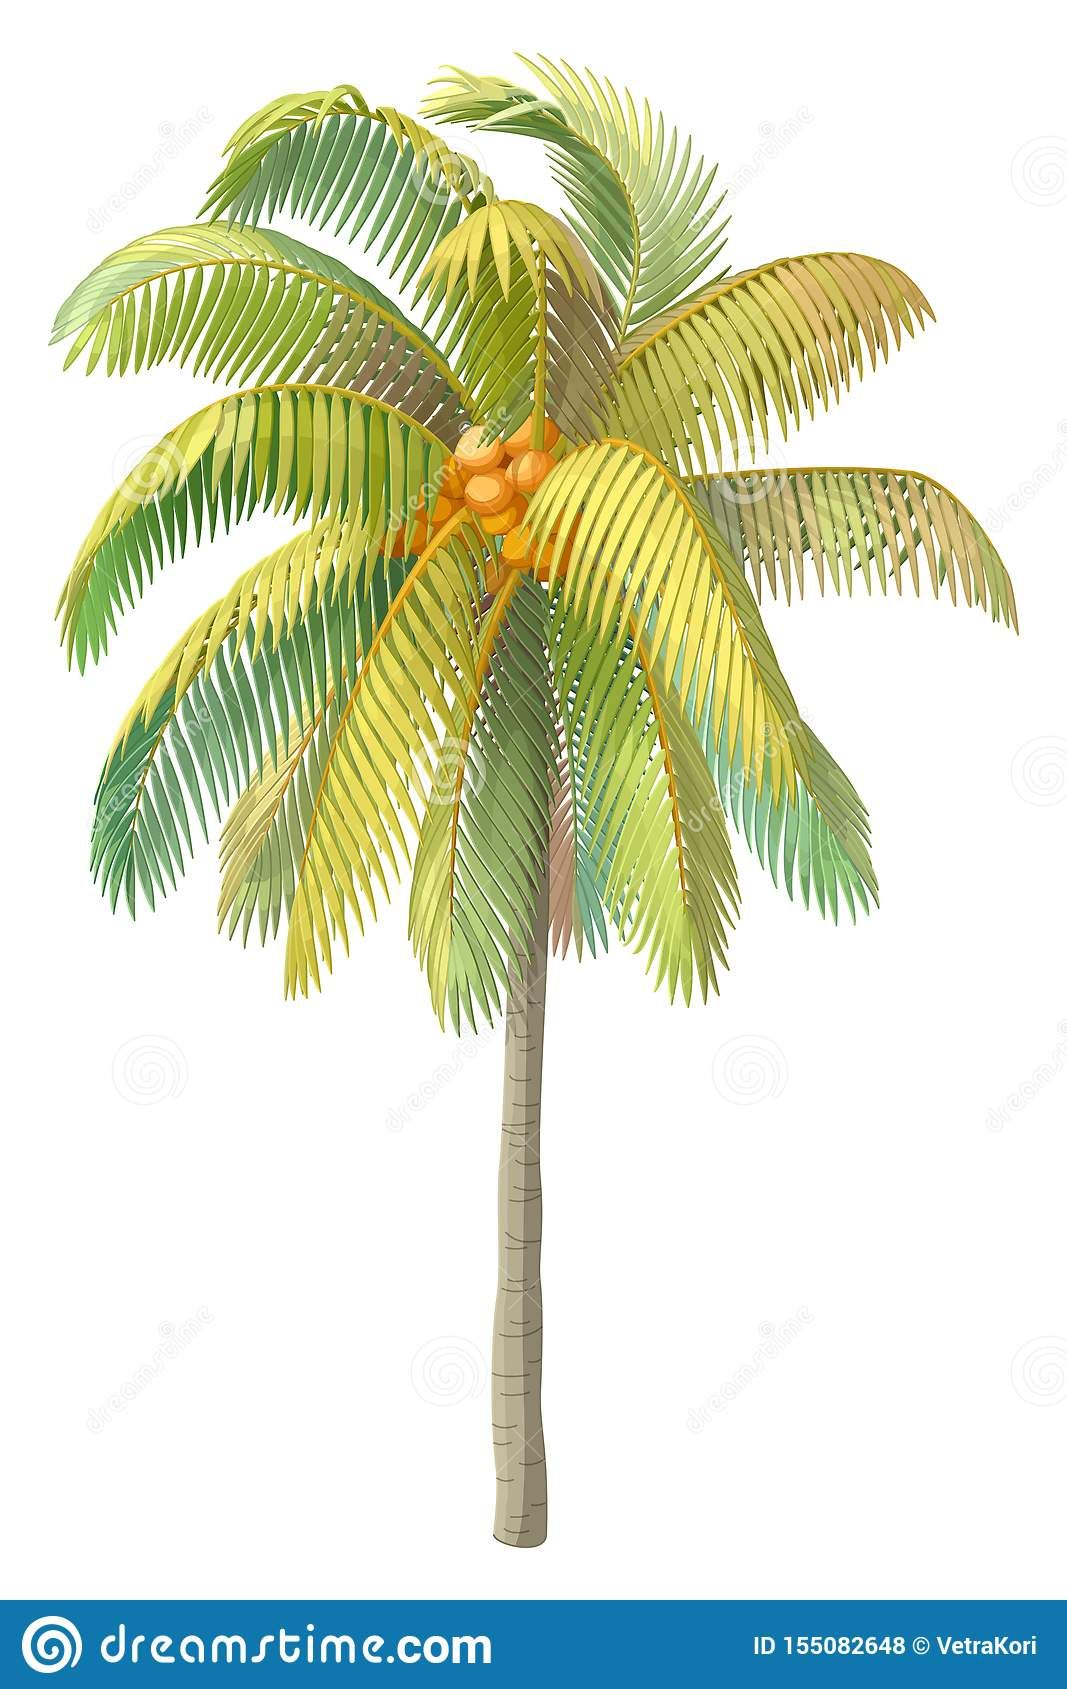 Pin By Marie Danielle On Arbre Palmier Palm Tree Drawing Tree Drawing Clip Art